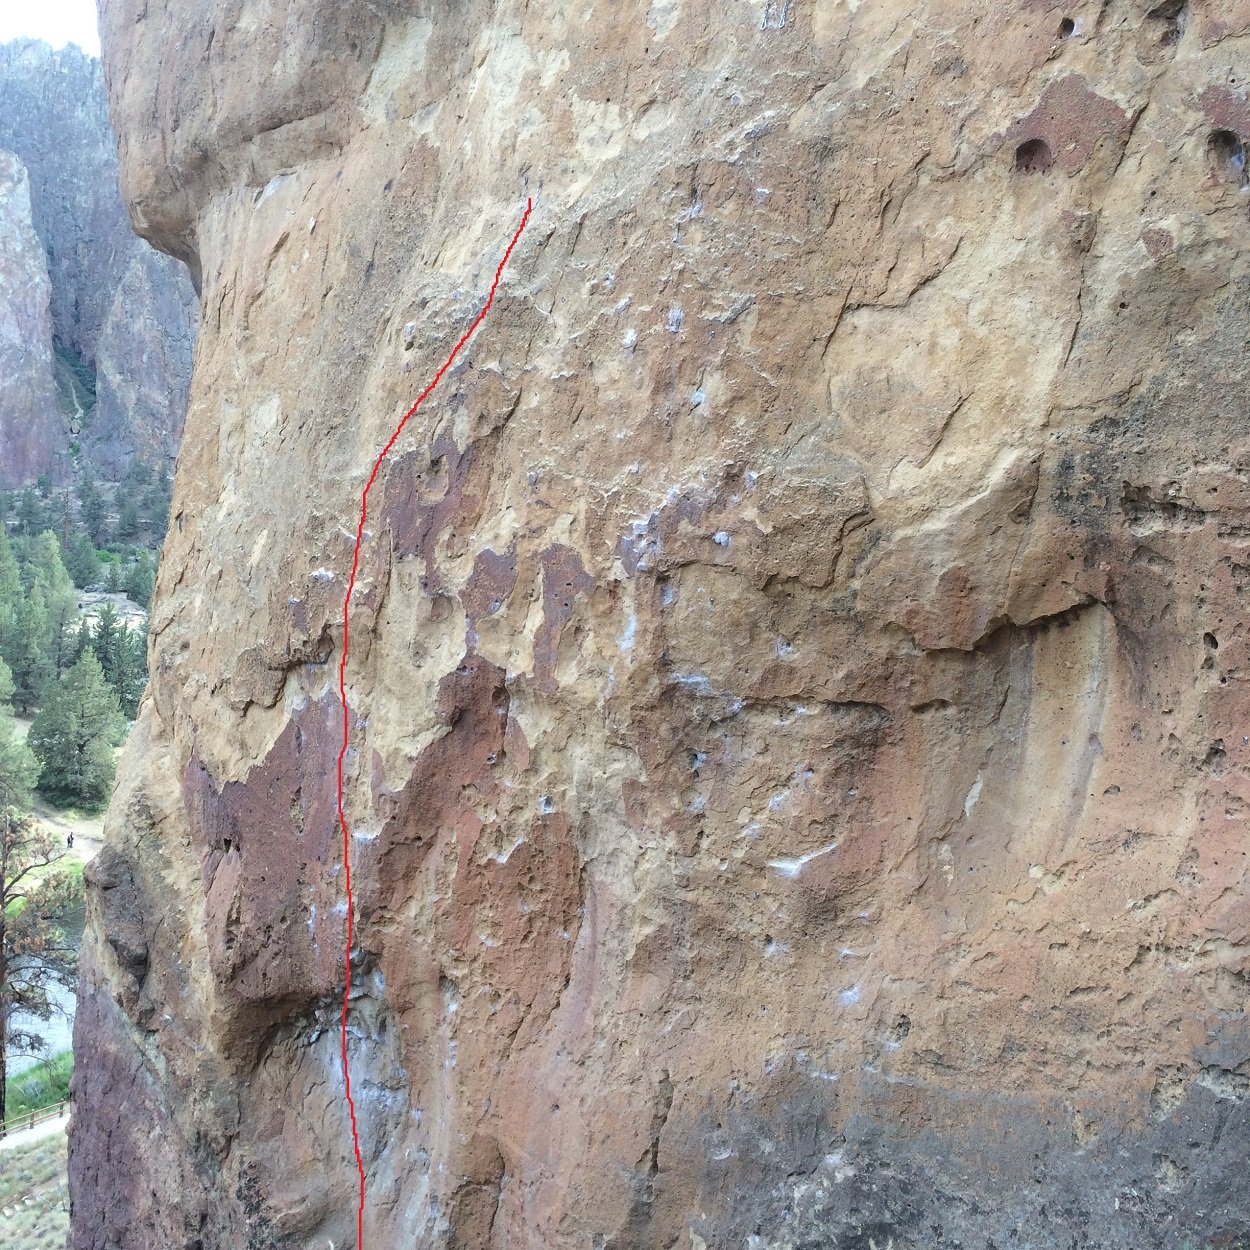 Blue Light Special - Smith Rock Climbing